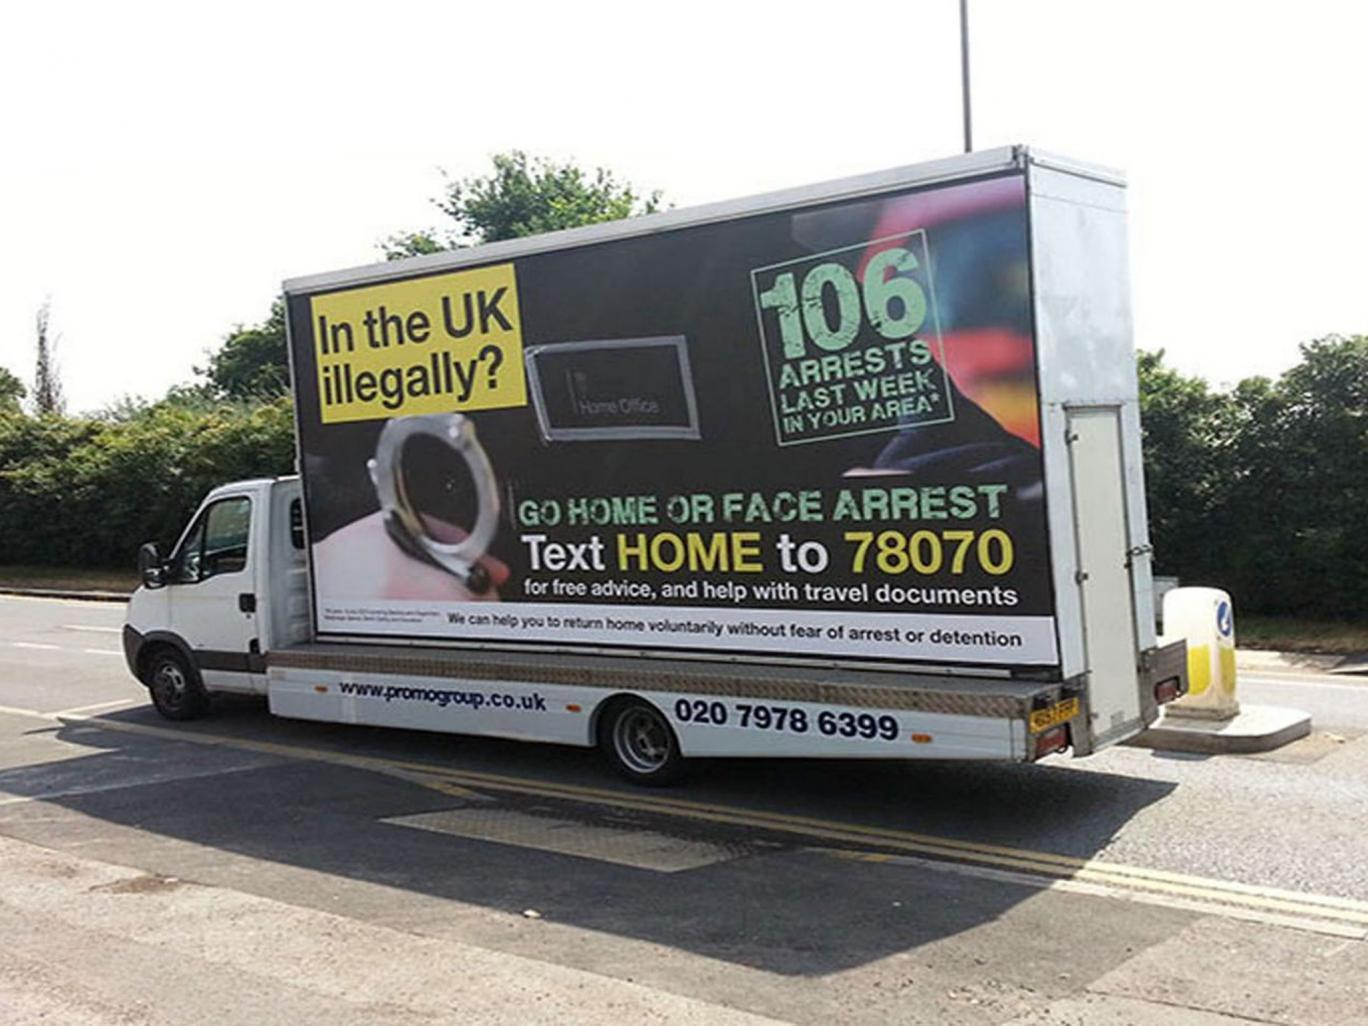 Home Office using 'go home' as example of racist hate crime – despite emblazoning same message on vans